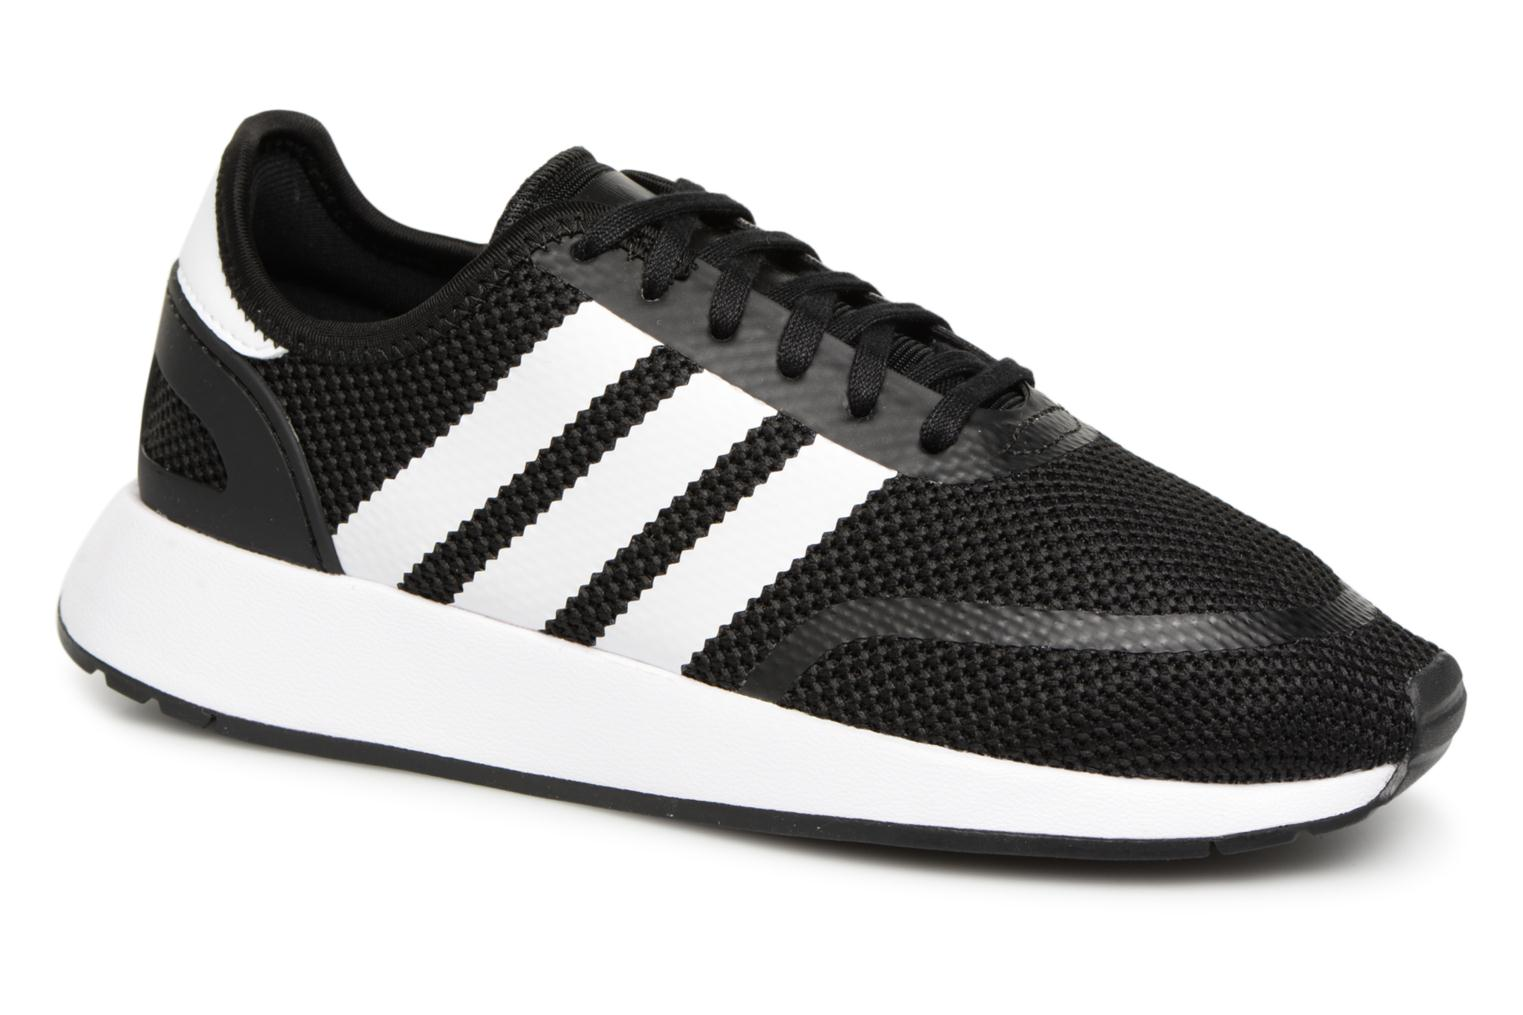 finest selection ed5db dfc37 ... brand new 07d77 4022c Trainers Adidas Originals N-5923 J Black detailed  view Pair view ...